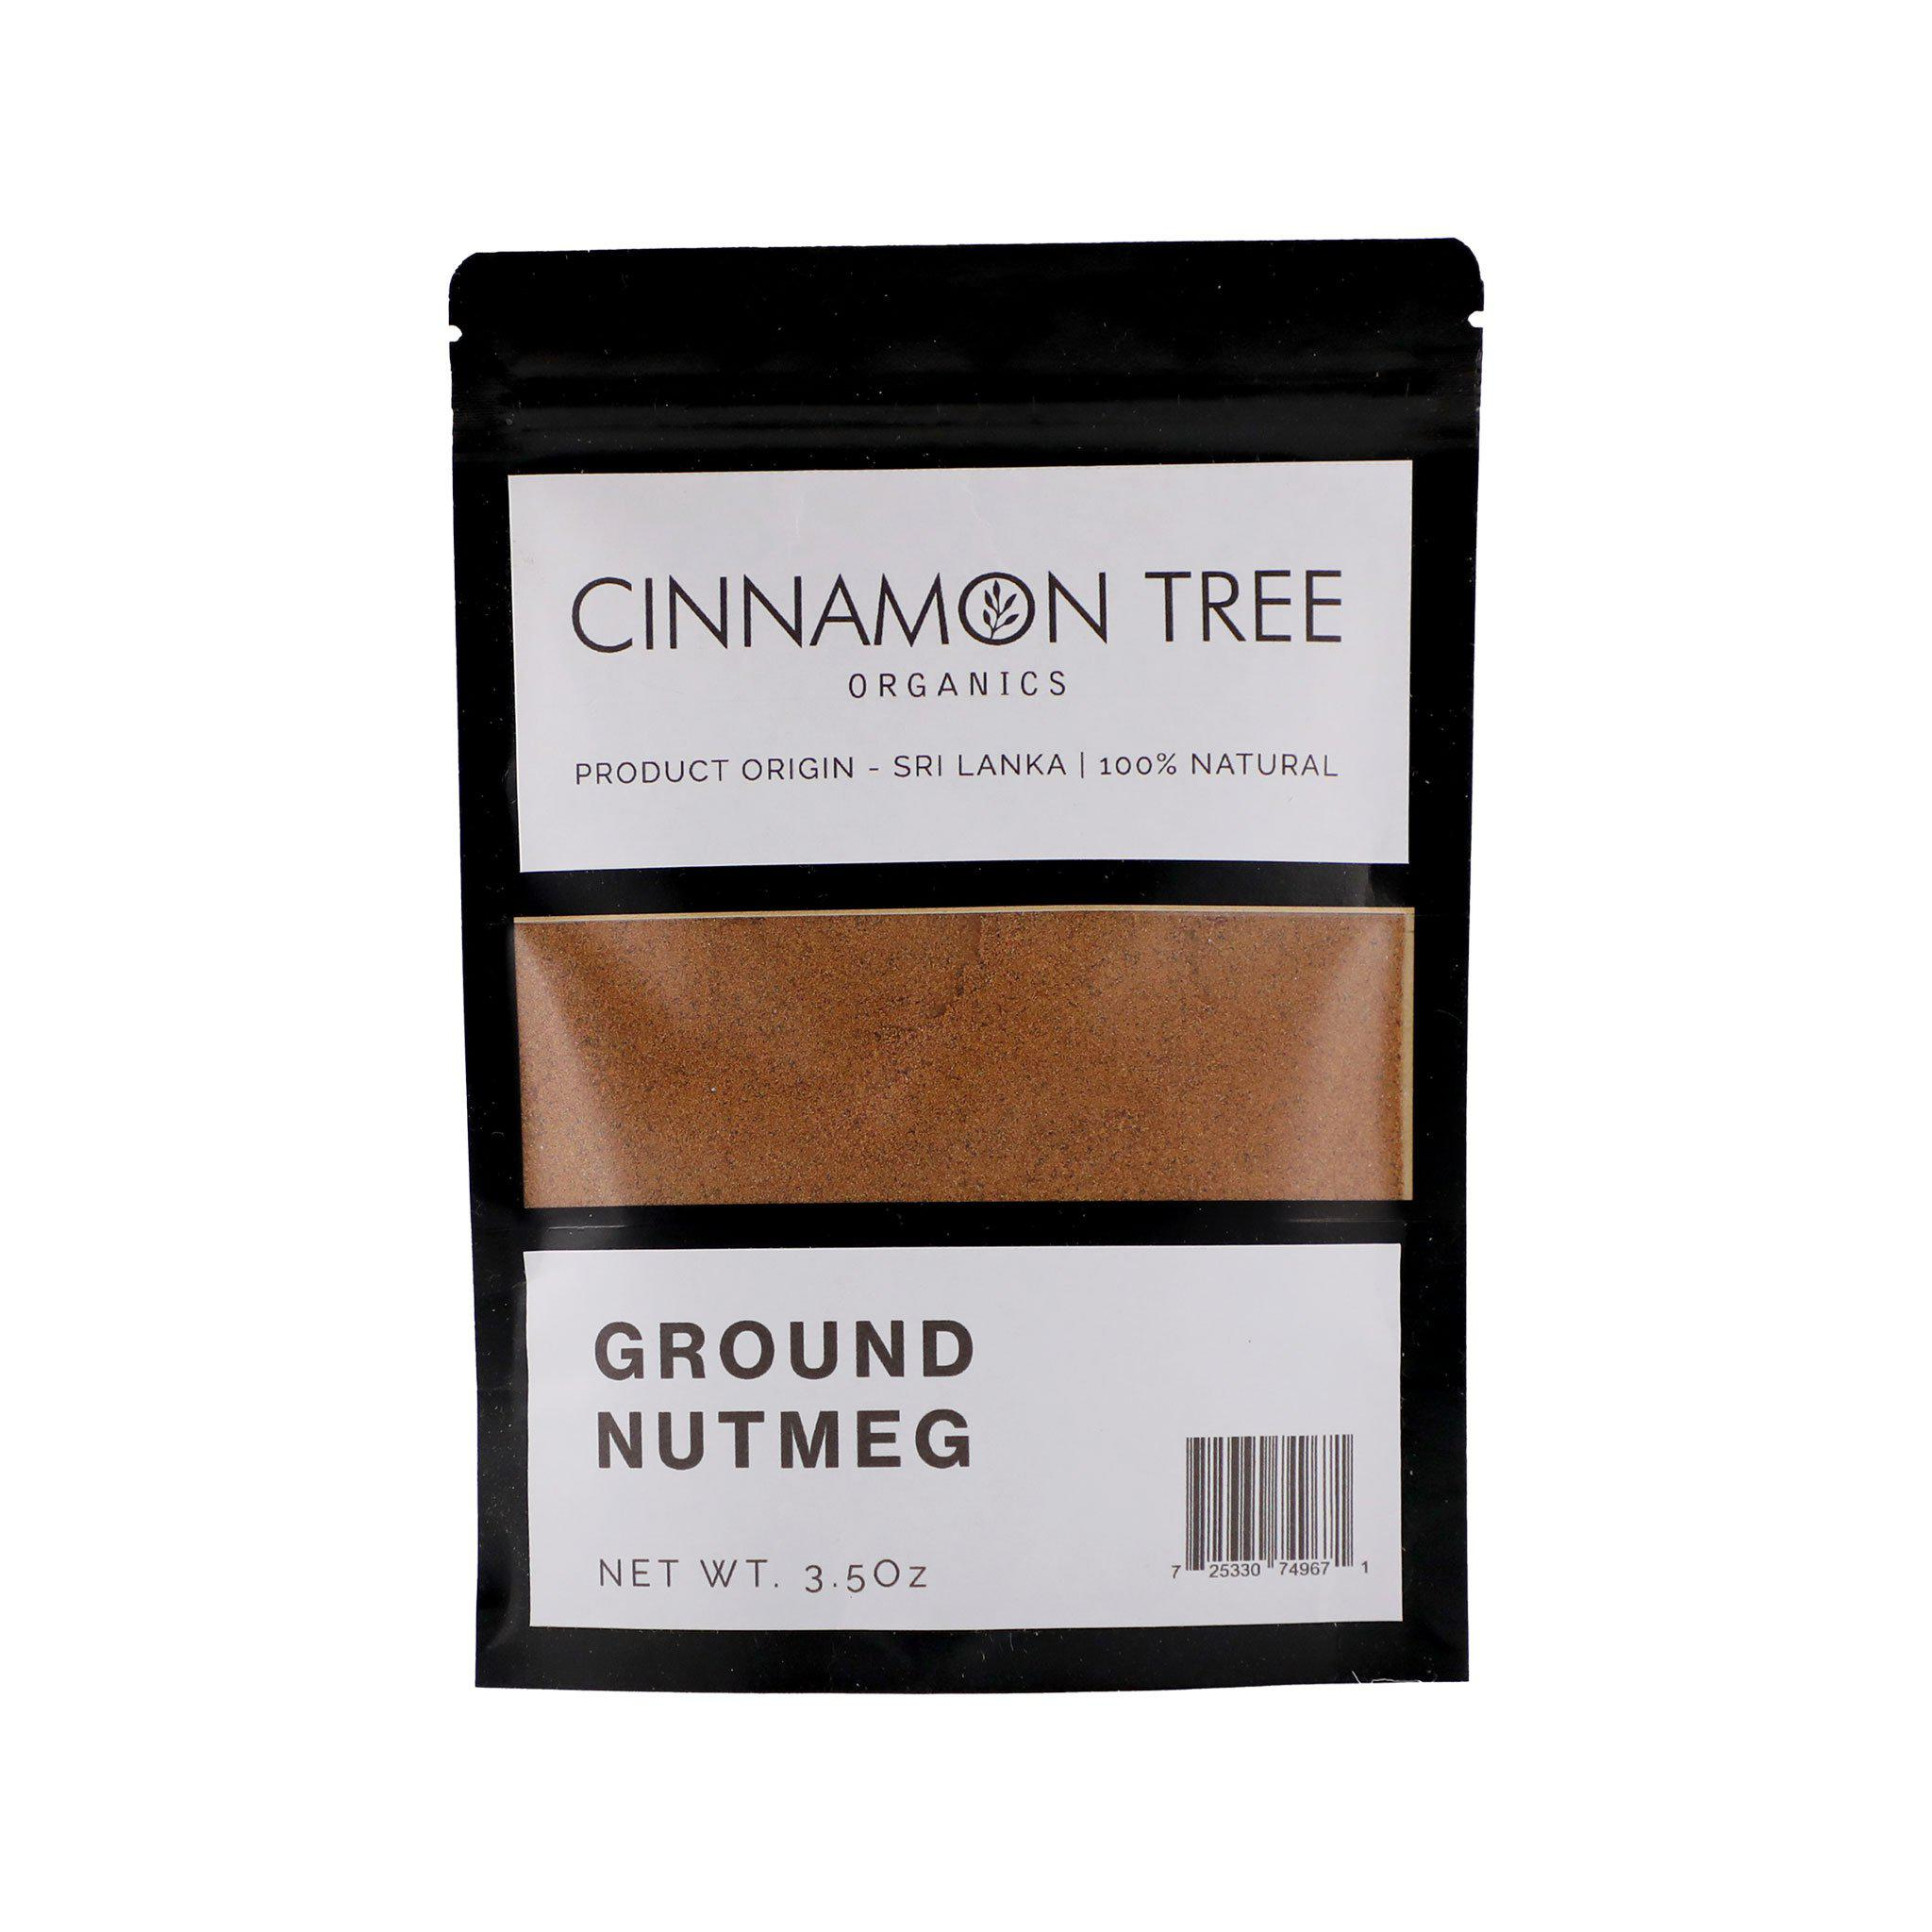 Cinnamon Tree Organics Ground Nutmeg 3.5 Oz